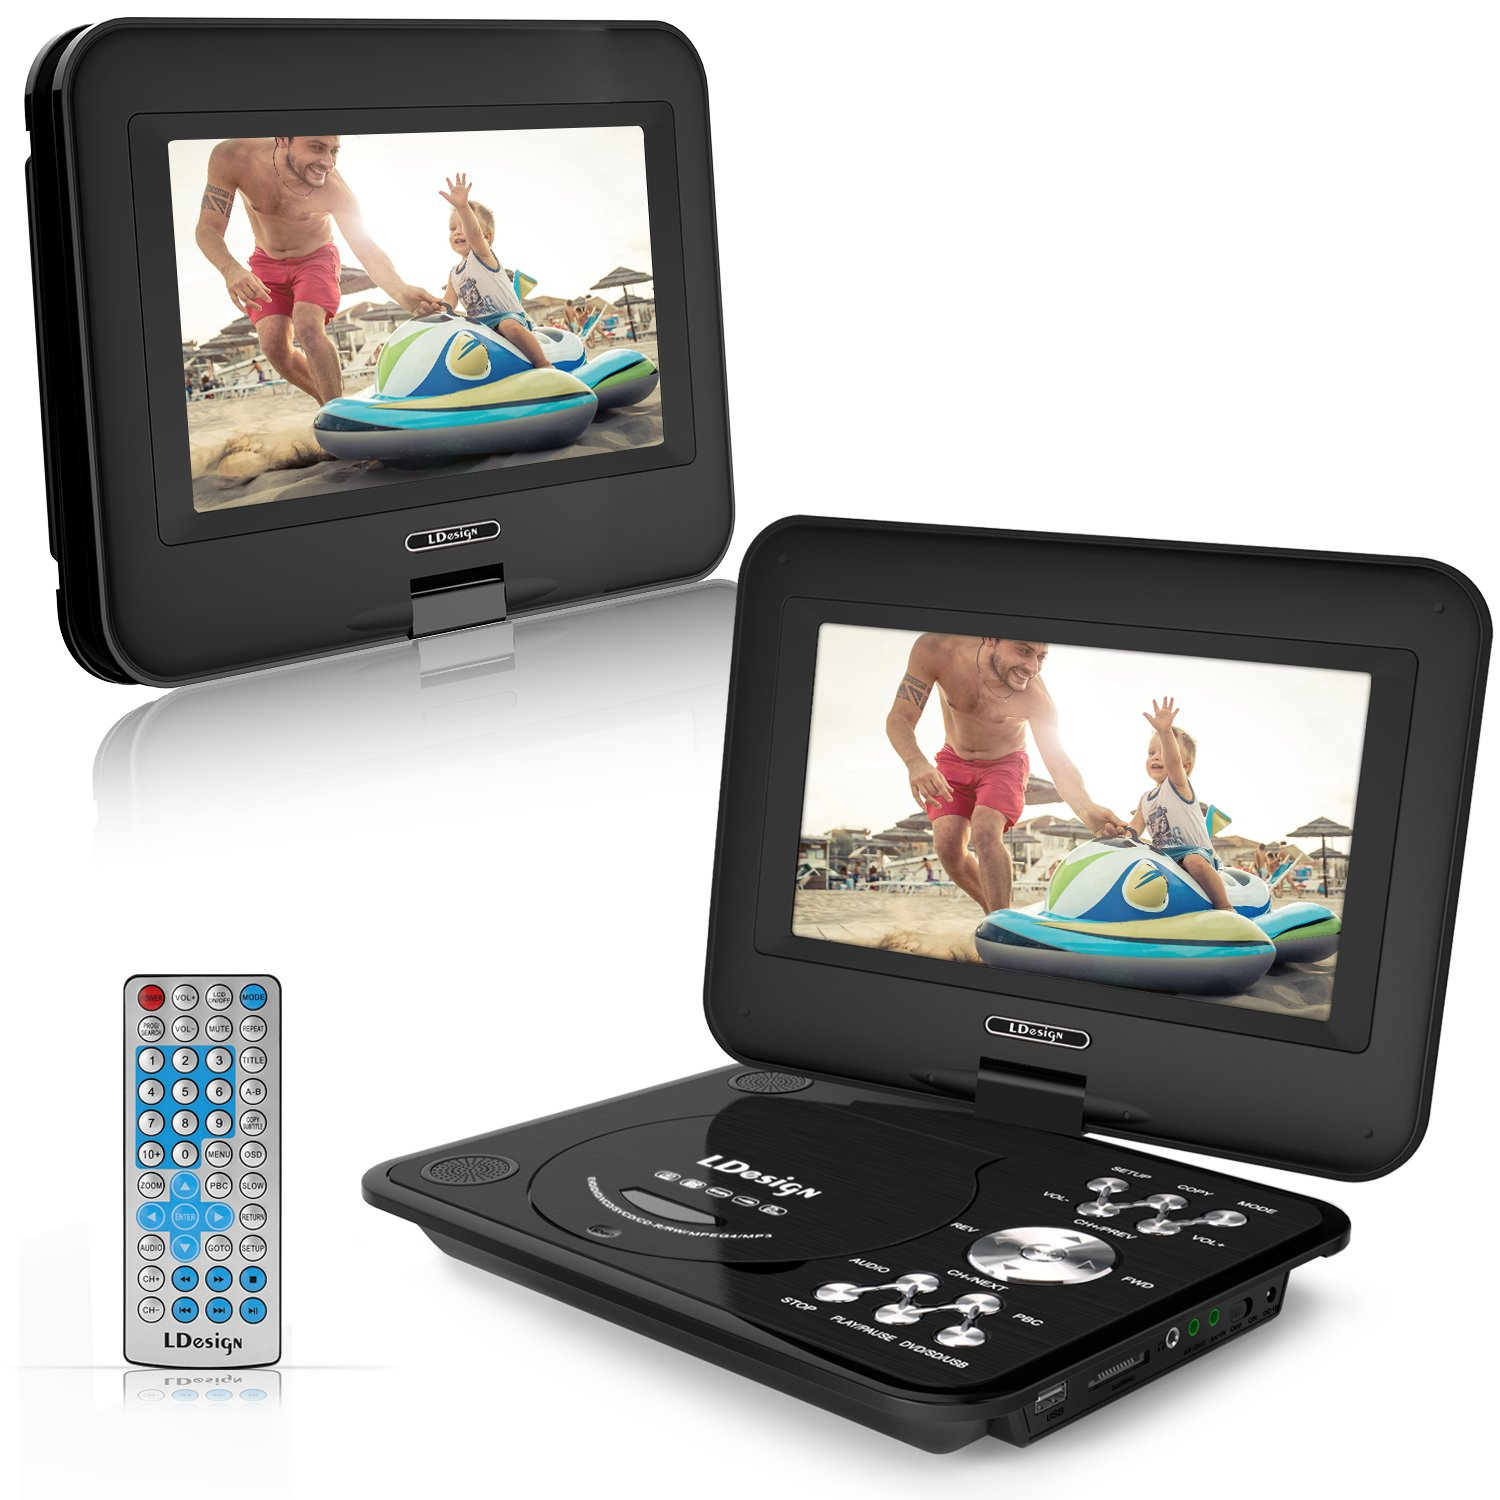 LDesign 9.5'' Portable DVD Player, Car DVD Player with 1024x600 TFT, Swivel Screen, 5-Hour Battery, Remote Control, Support SD Card & USB, Multi Media Play, Sync Screen, 3 Charge Mode, Last Memory